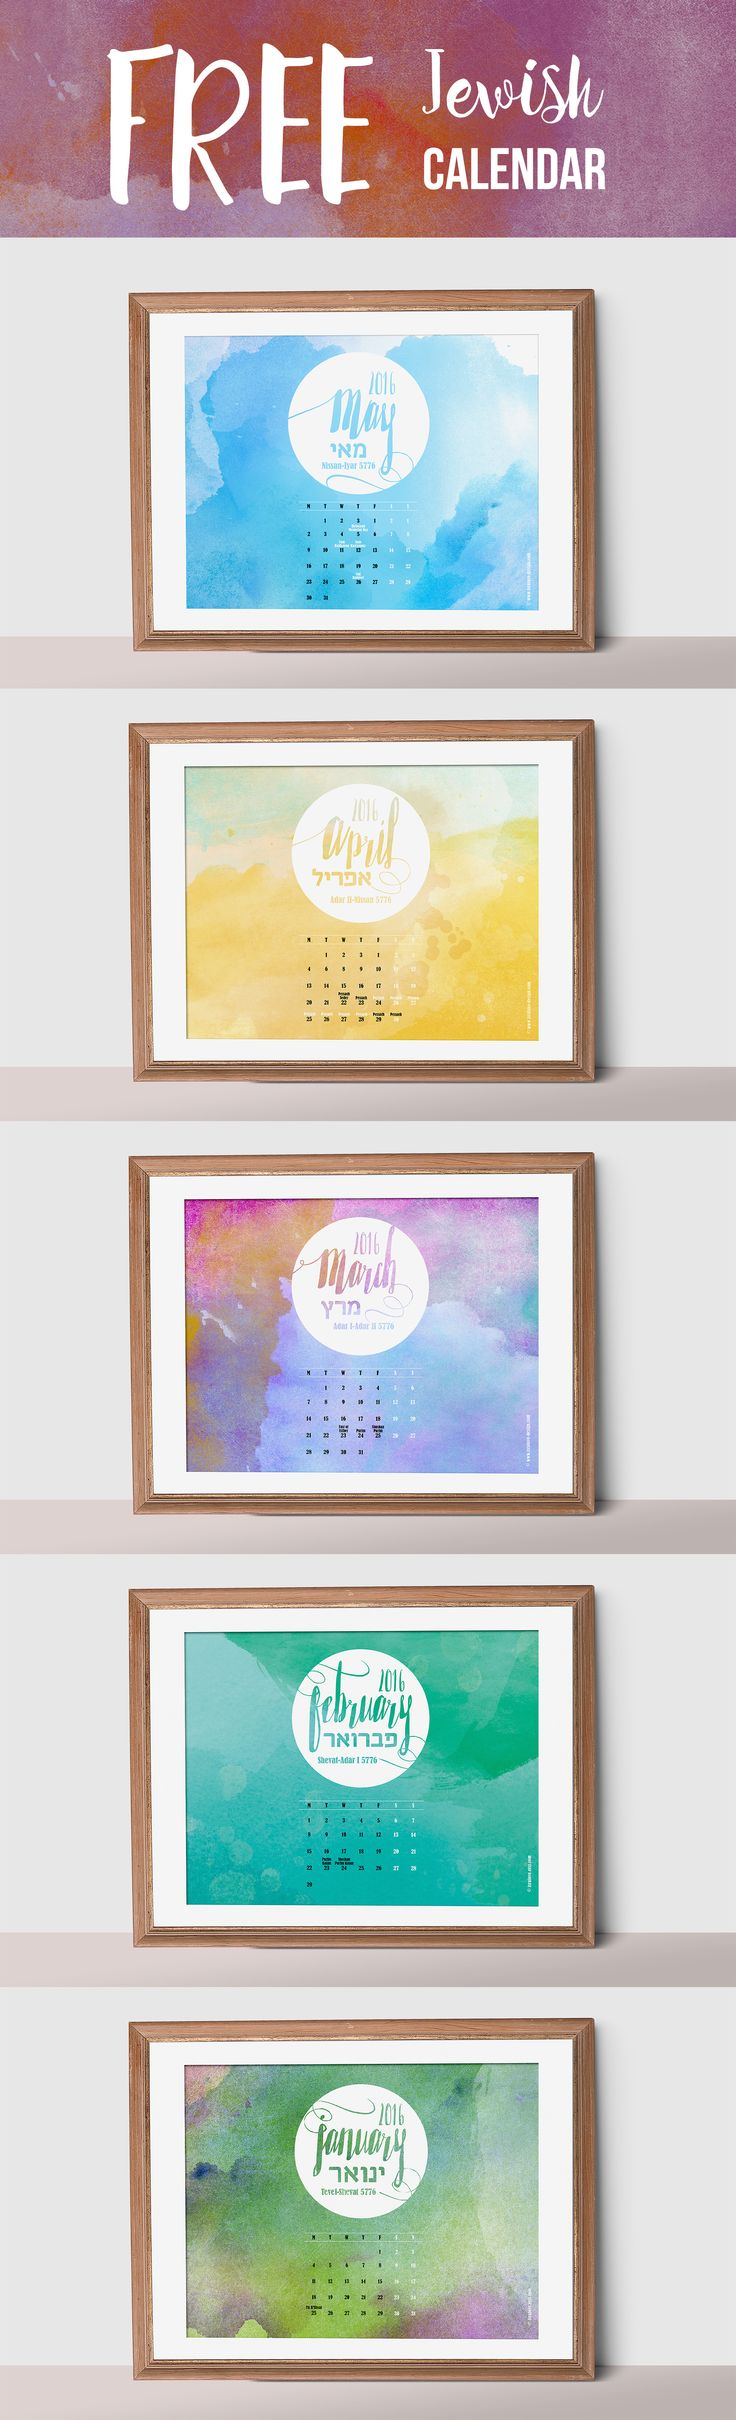 Download a monthly Jewish Calendar including the Jewish Holidays. Free Download, Printable, by Isralove, Watercolor theme, Tishrey, Cheshwan, Shevat, Adar. Nisan, Iyar, Elul, Aw, Lunar calendar, free frame, home decor, Jewish gifts